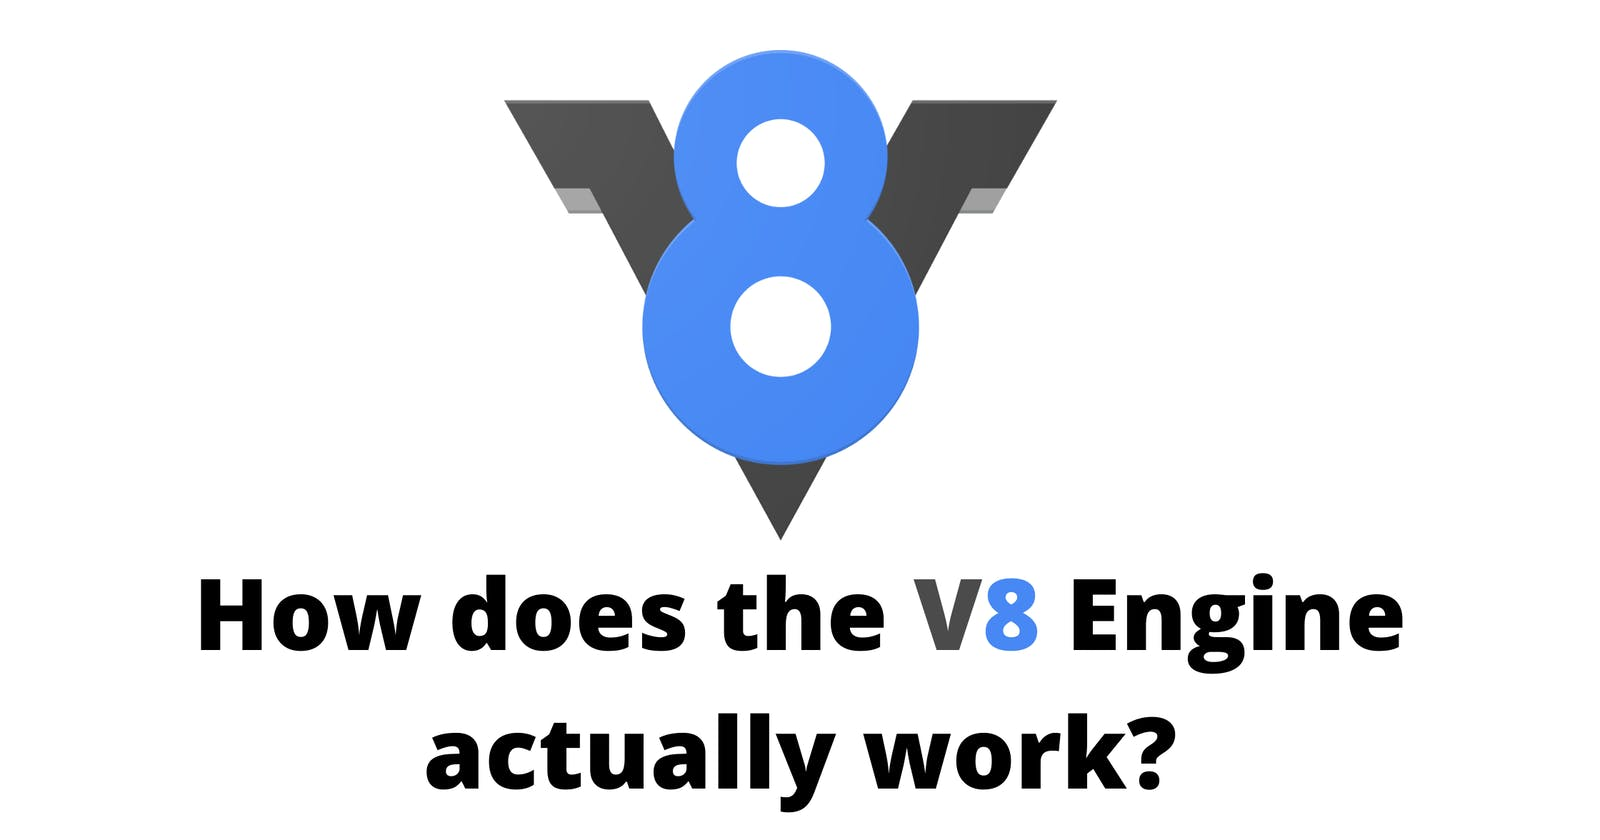 How does the V8 Engine actually work?